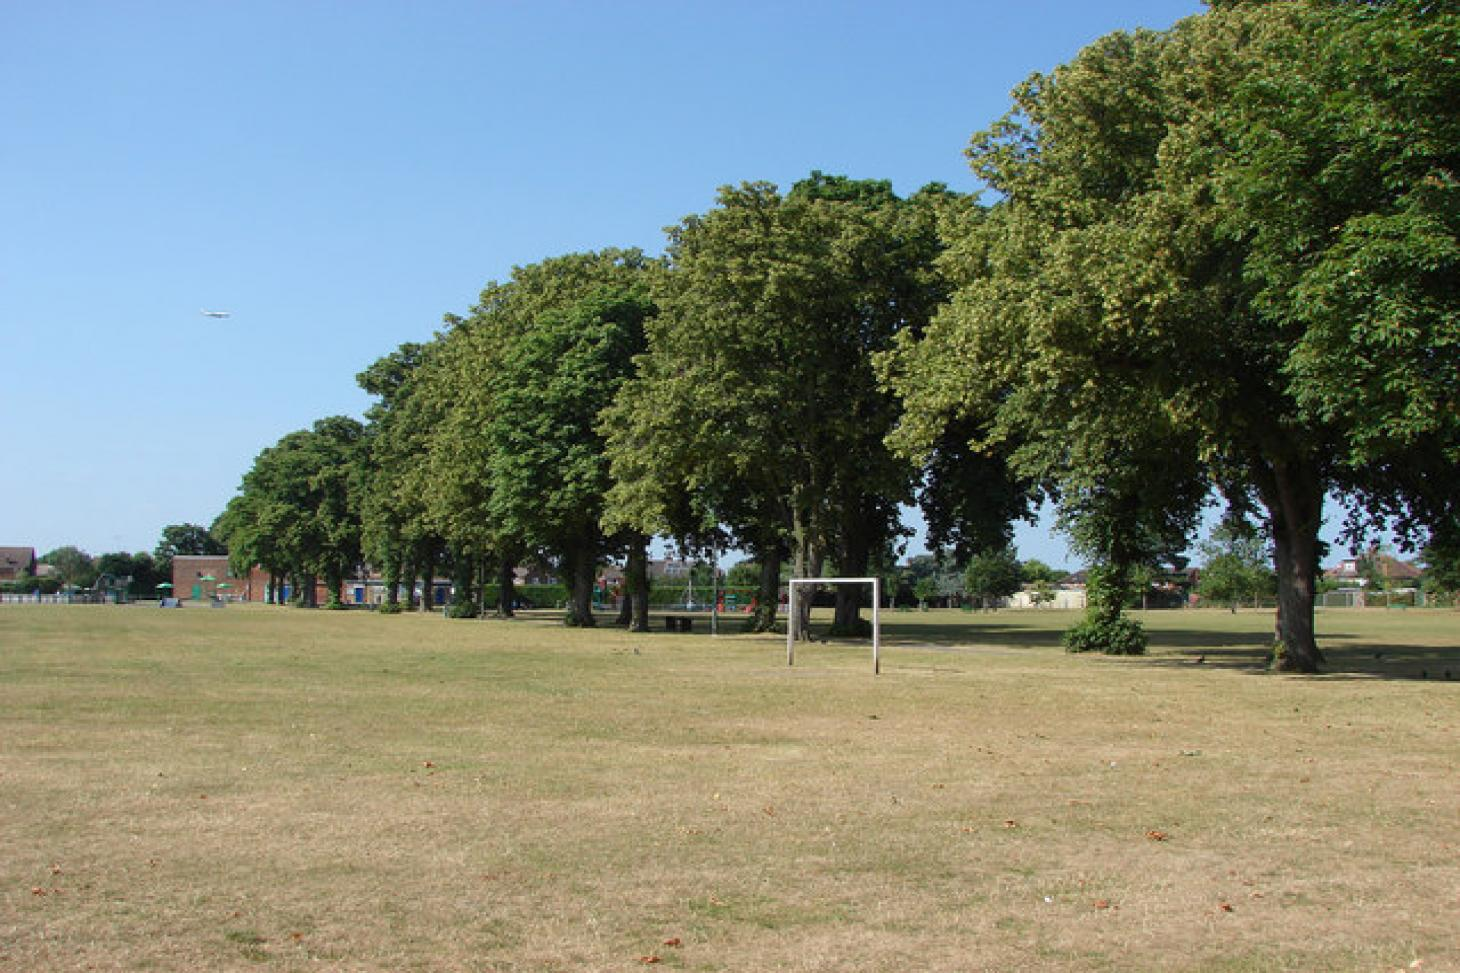 Old Windsor Recreation Ground 5 a side | Grass football pitch